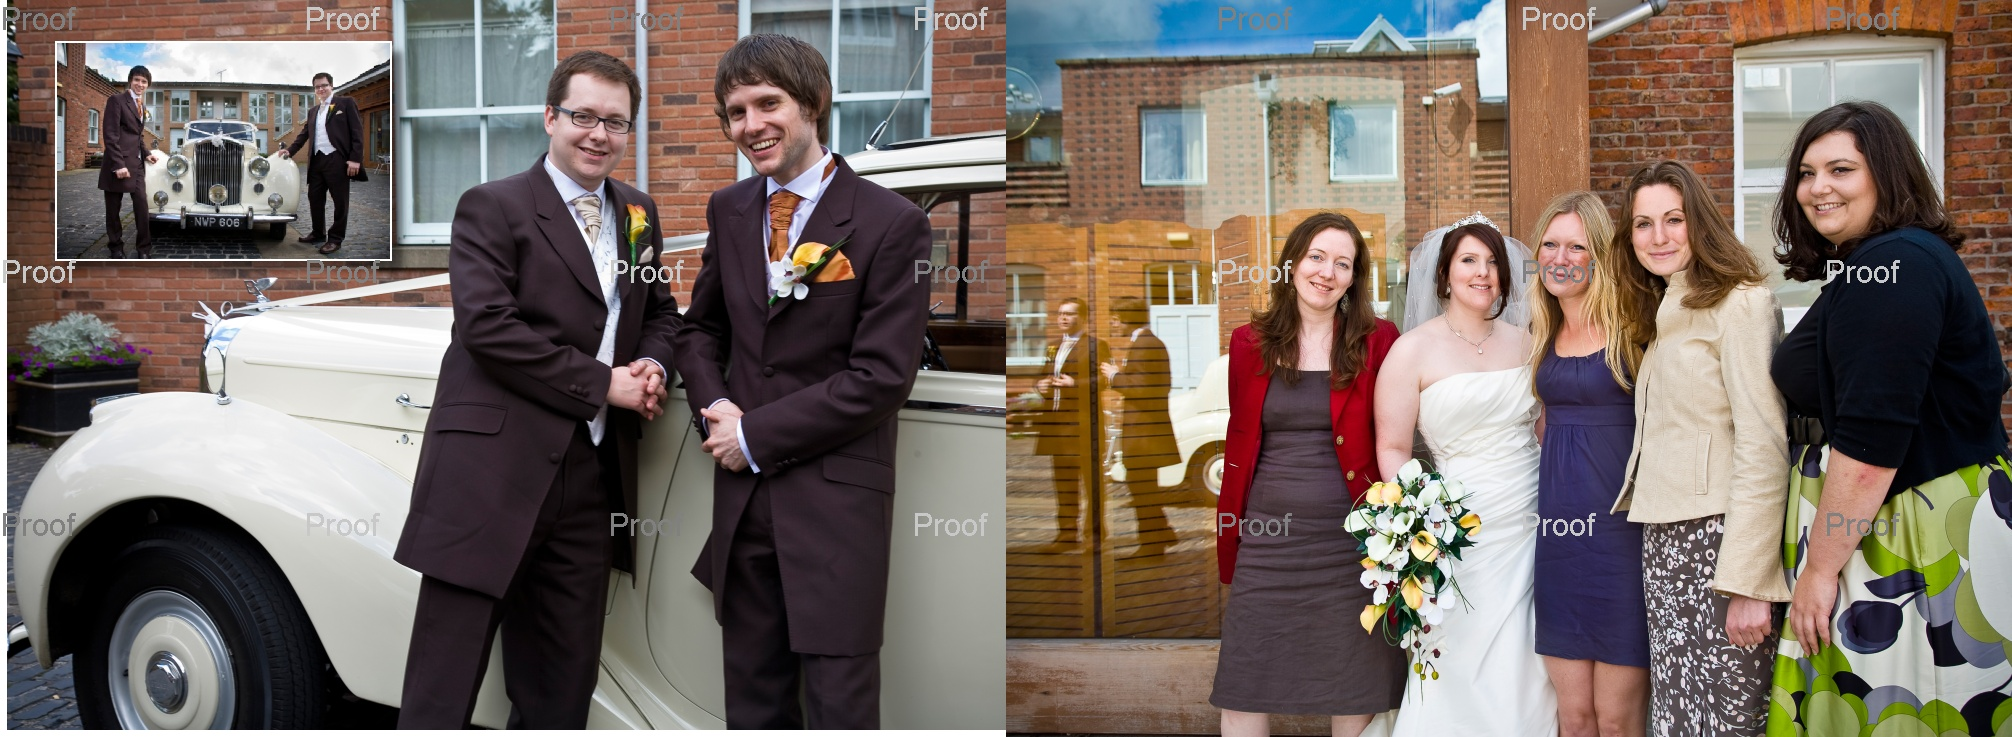 pages 38-39 of wedding storybook album design outside Chancellors Hotel & Conference Centre